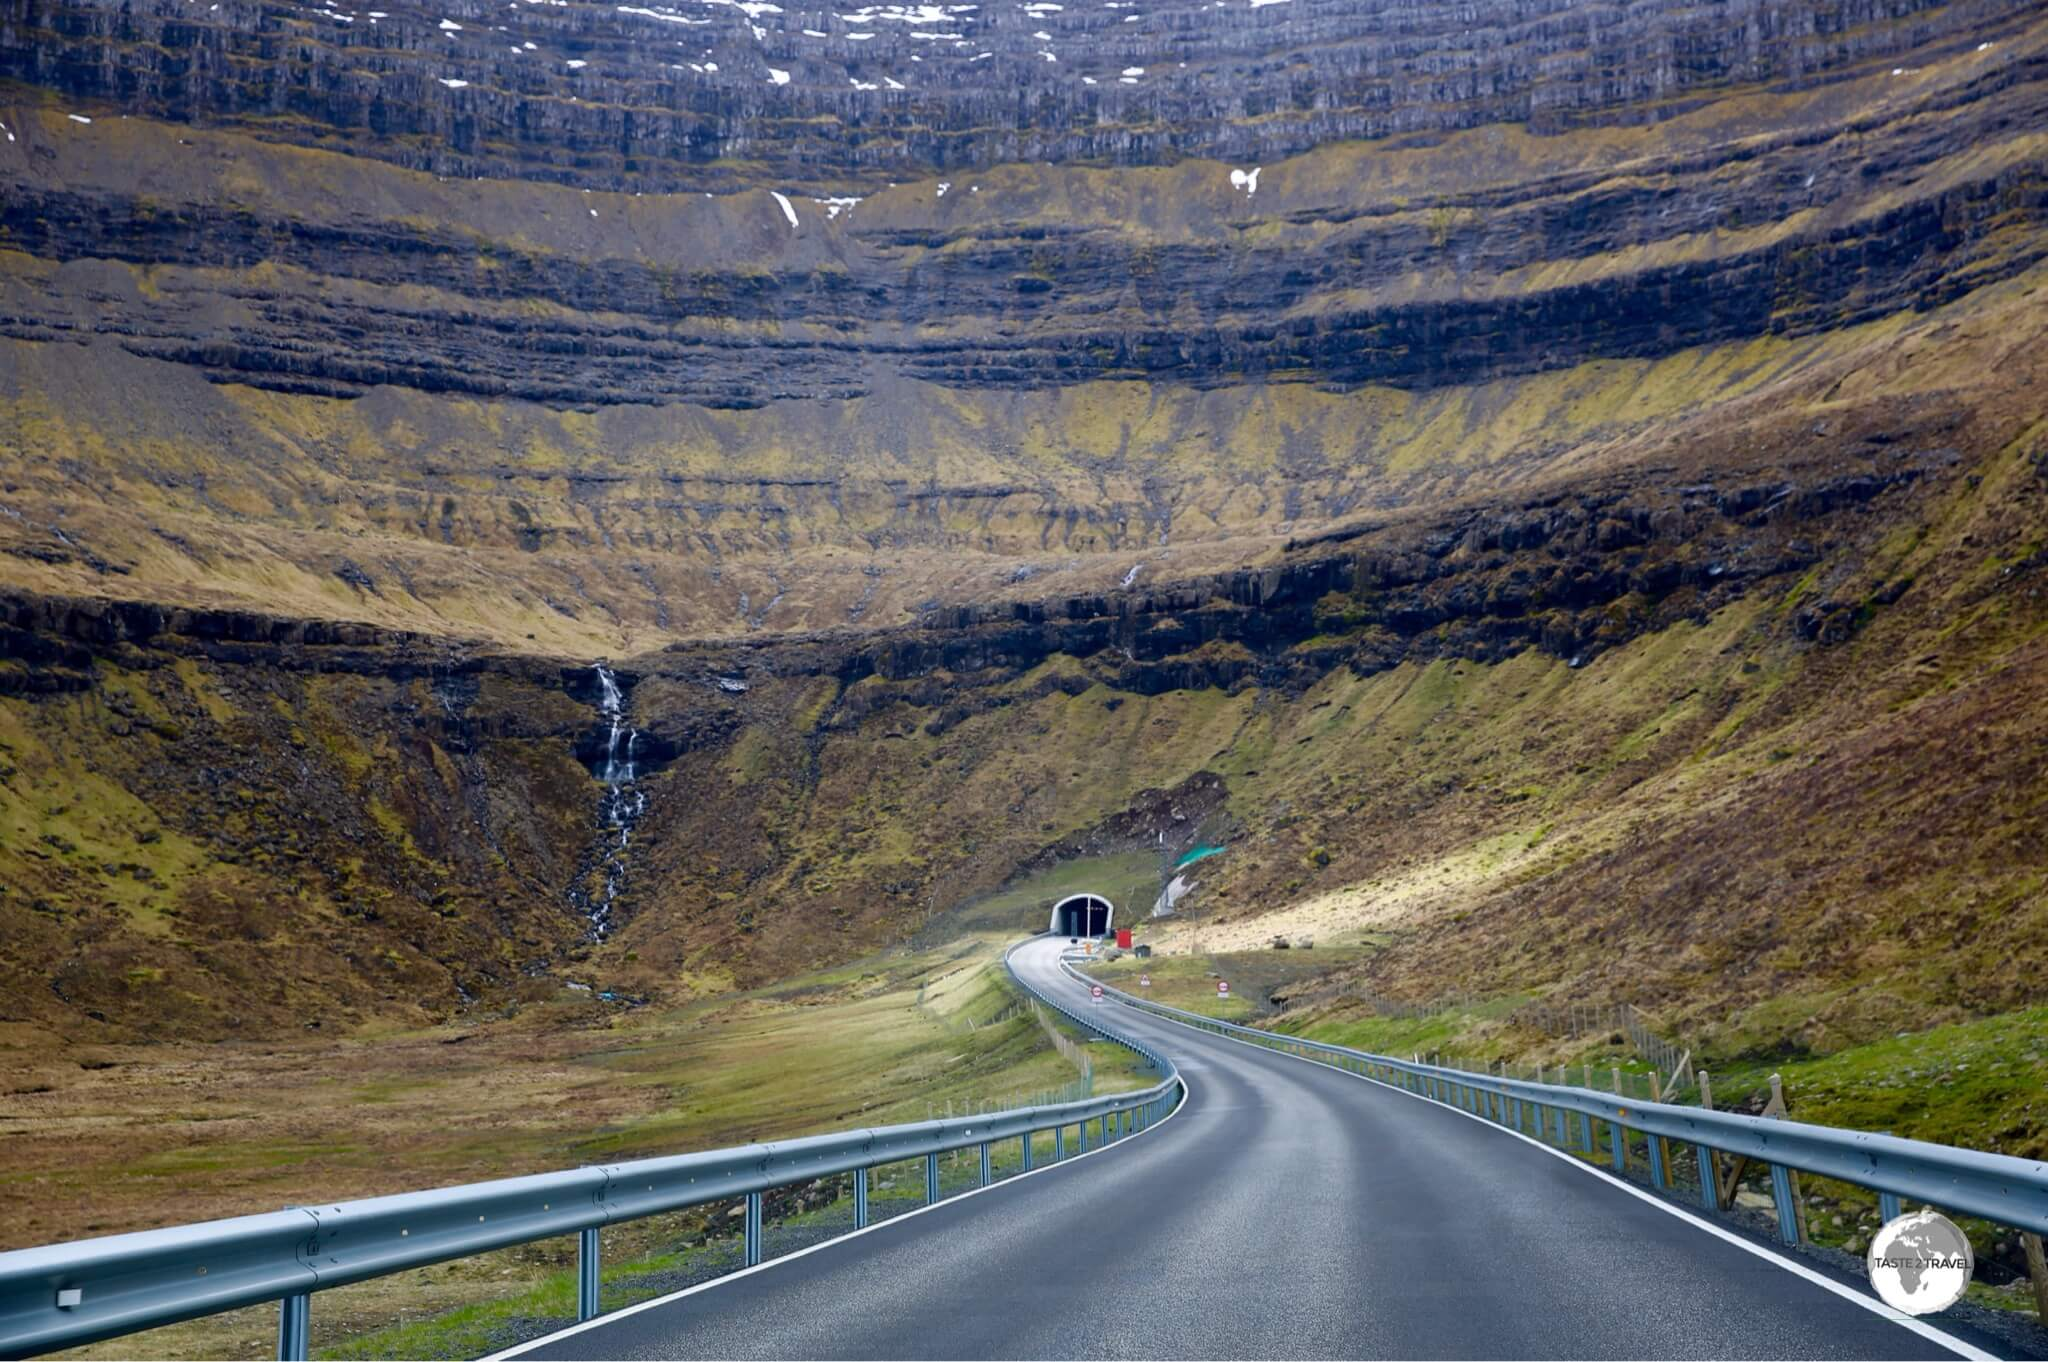 The almost 2-km long Viðareiðistunnilin was opened in 2016 and cuts across the centre of the island to the west coast.